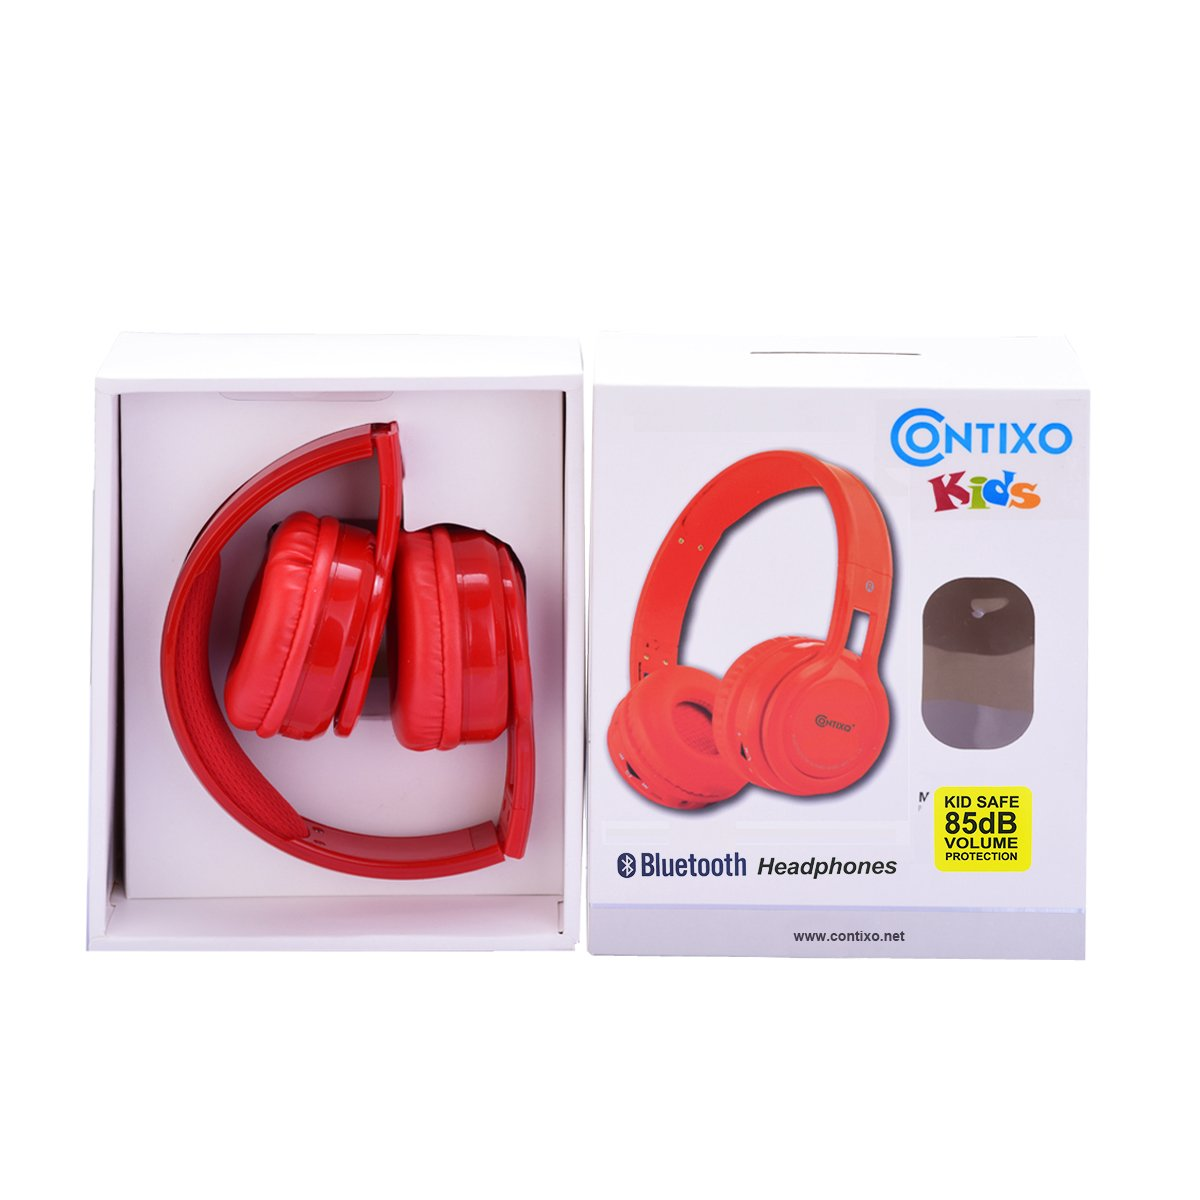 Amazon.com: Contixo KB2600 Kid Safe 85db Foldable Wireless Bluetooth Headphone Built-in Microphone, Micro SD Card Music Player, FM Stereo Radio (Red) - Best ...